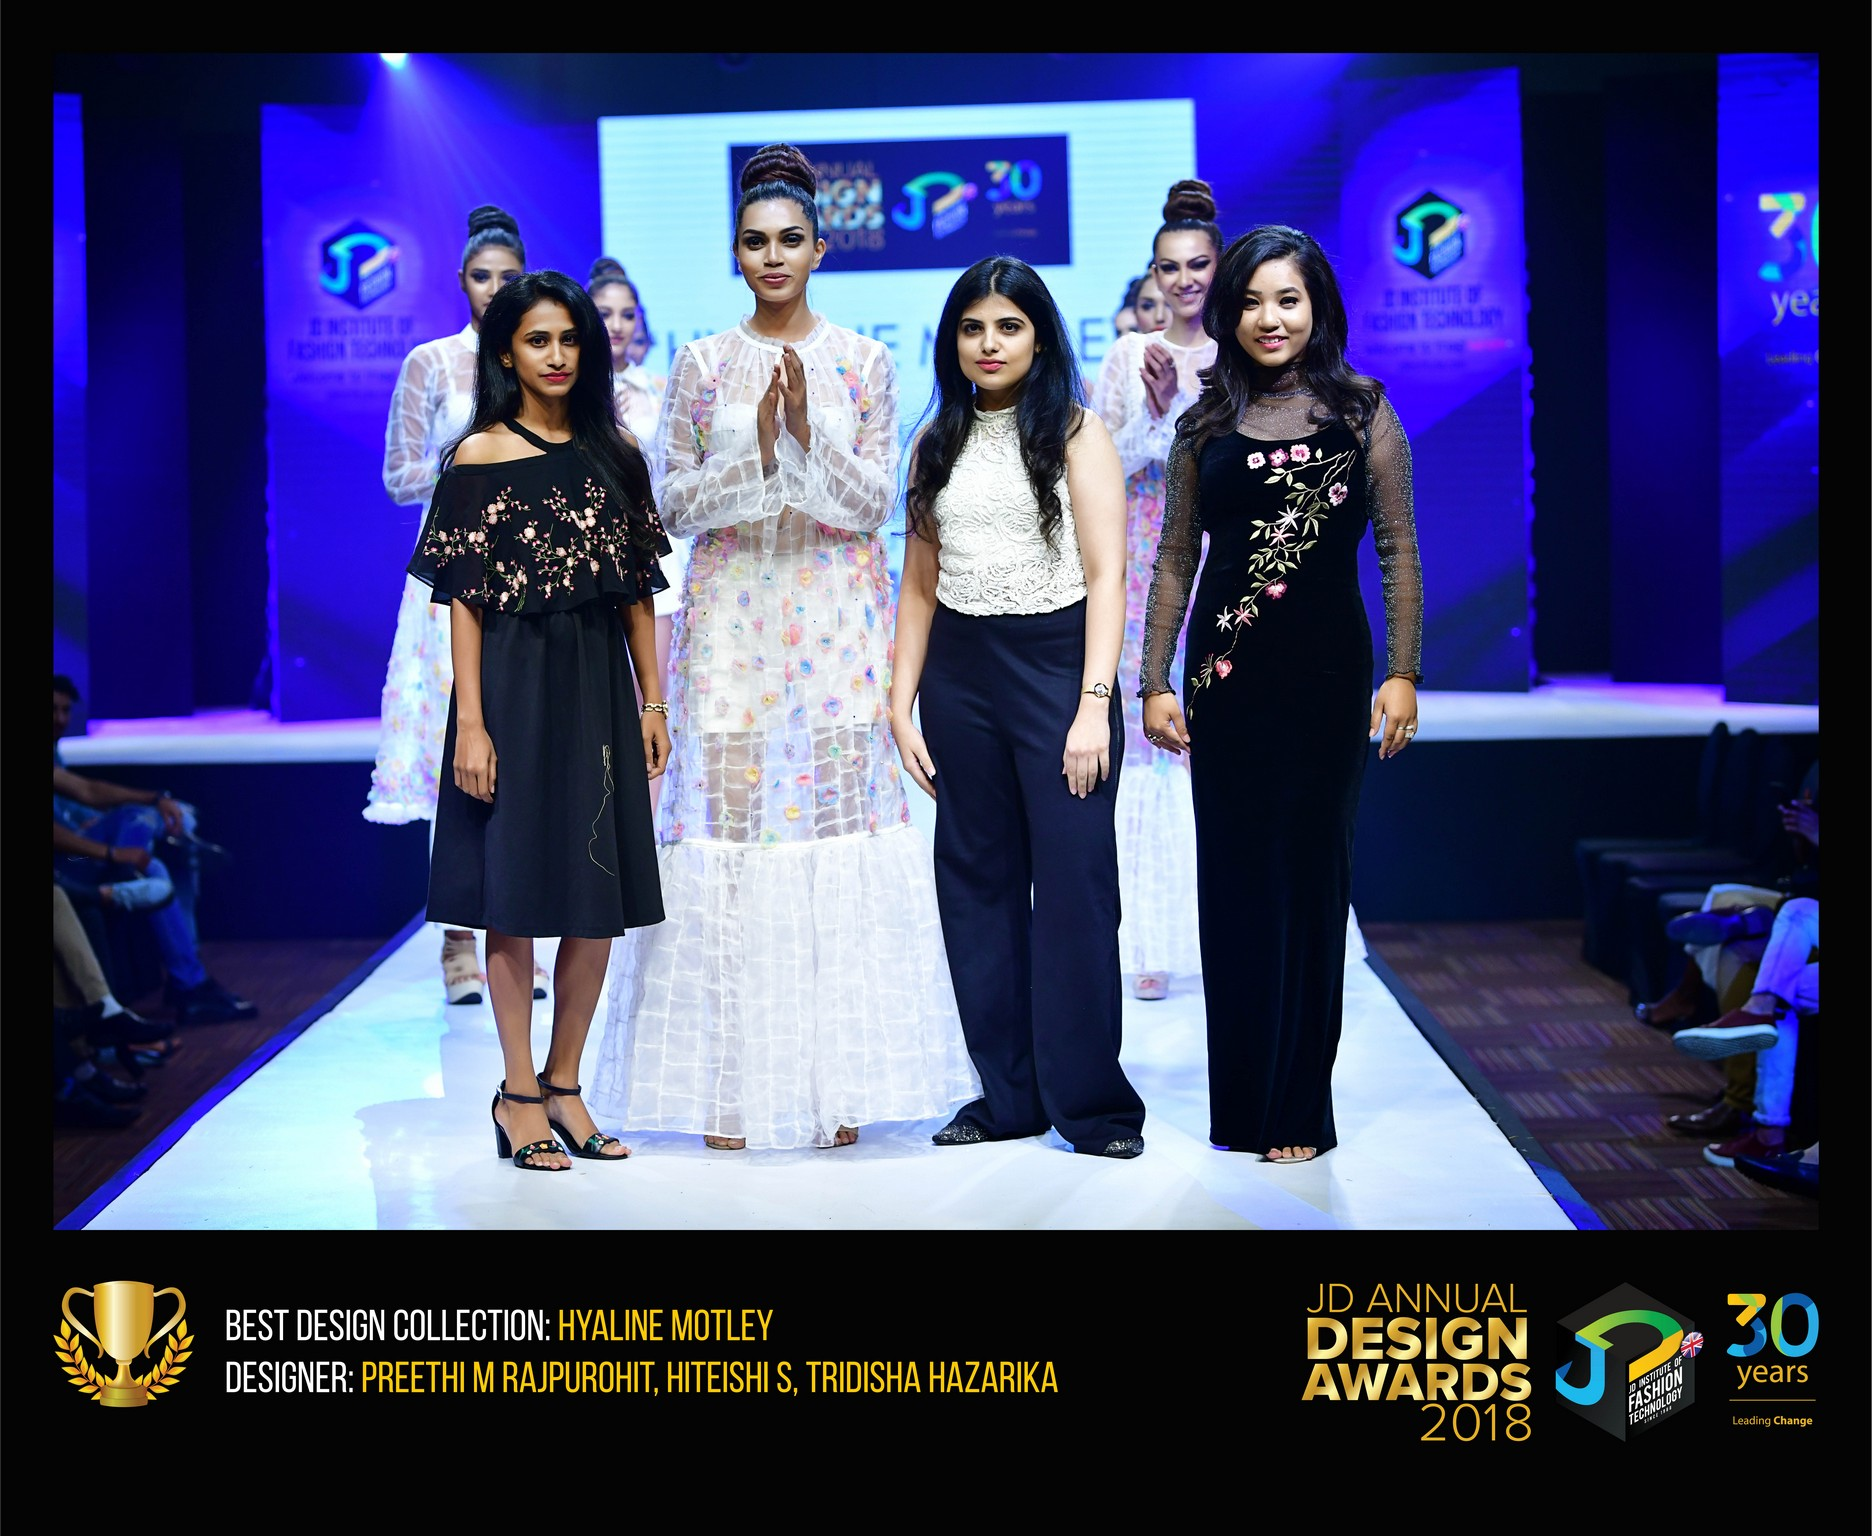 Hyaline Motley – Change – JD Annual Design Awards 2018 | Designer: Preethi, Tridisha and Heitishi from DFD March 2017 | Photography : Jerin Nath (@jerin_nath) hyaline motley - HYALINE MOTLEY7 final - Hyaline Motley – Change – JD Annual Design Awards 2018